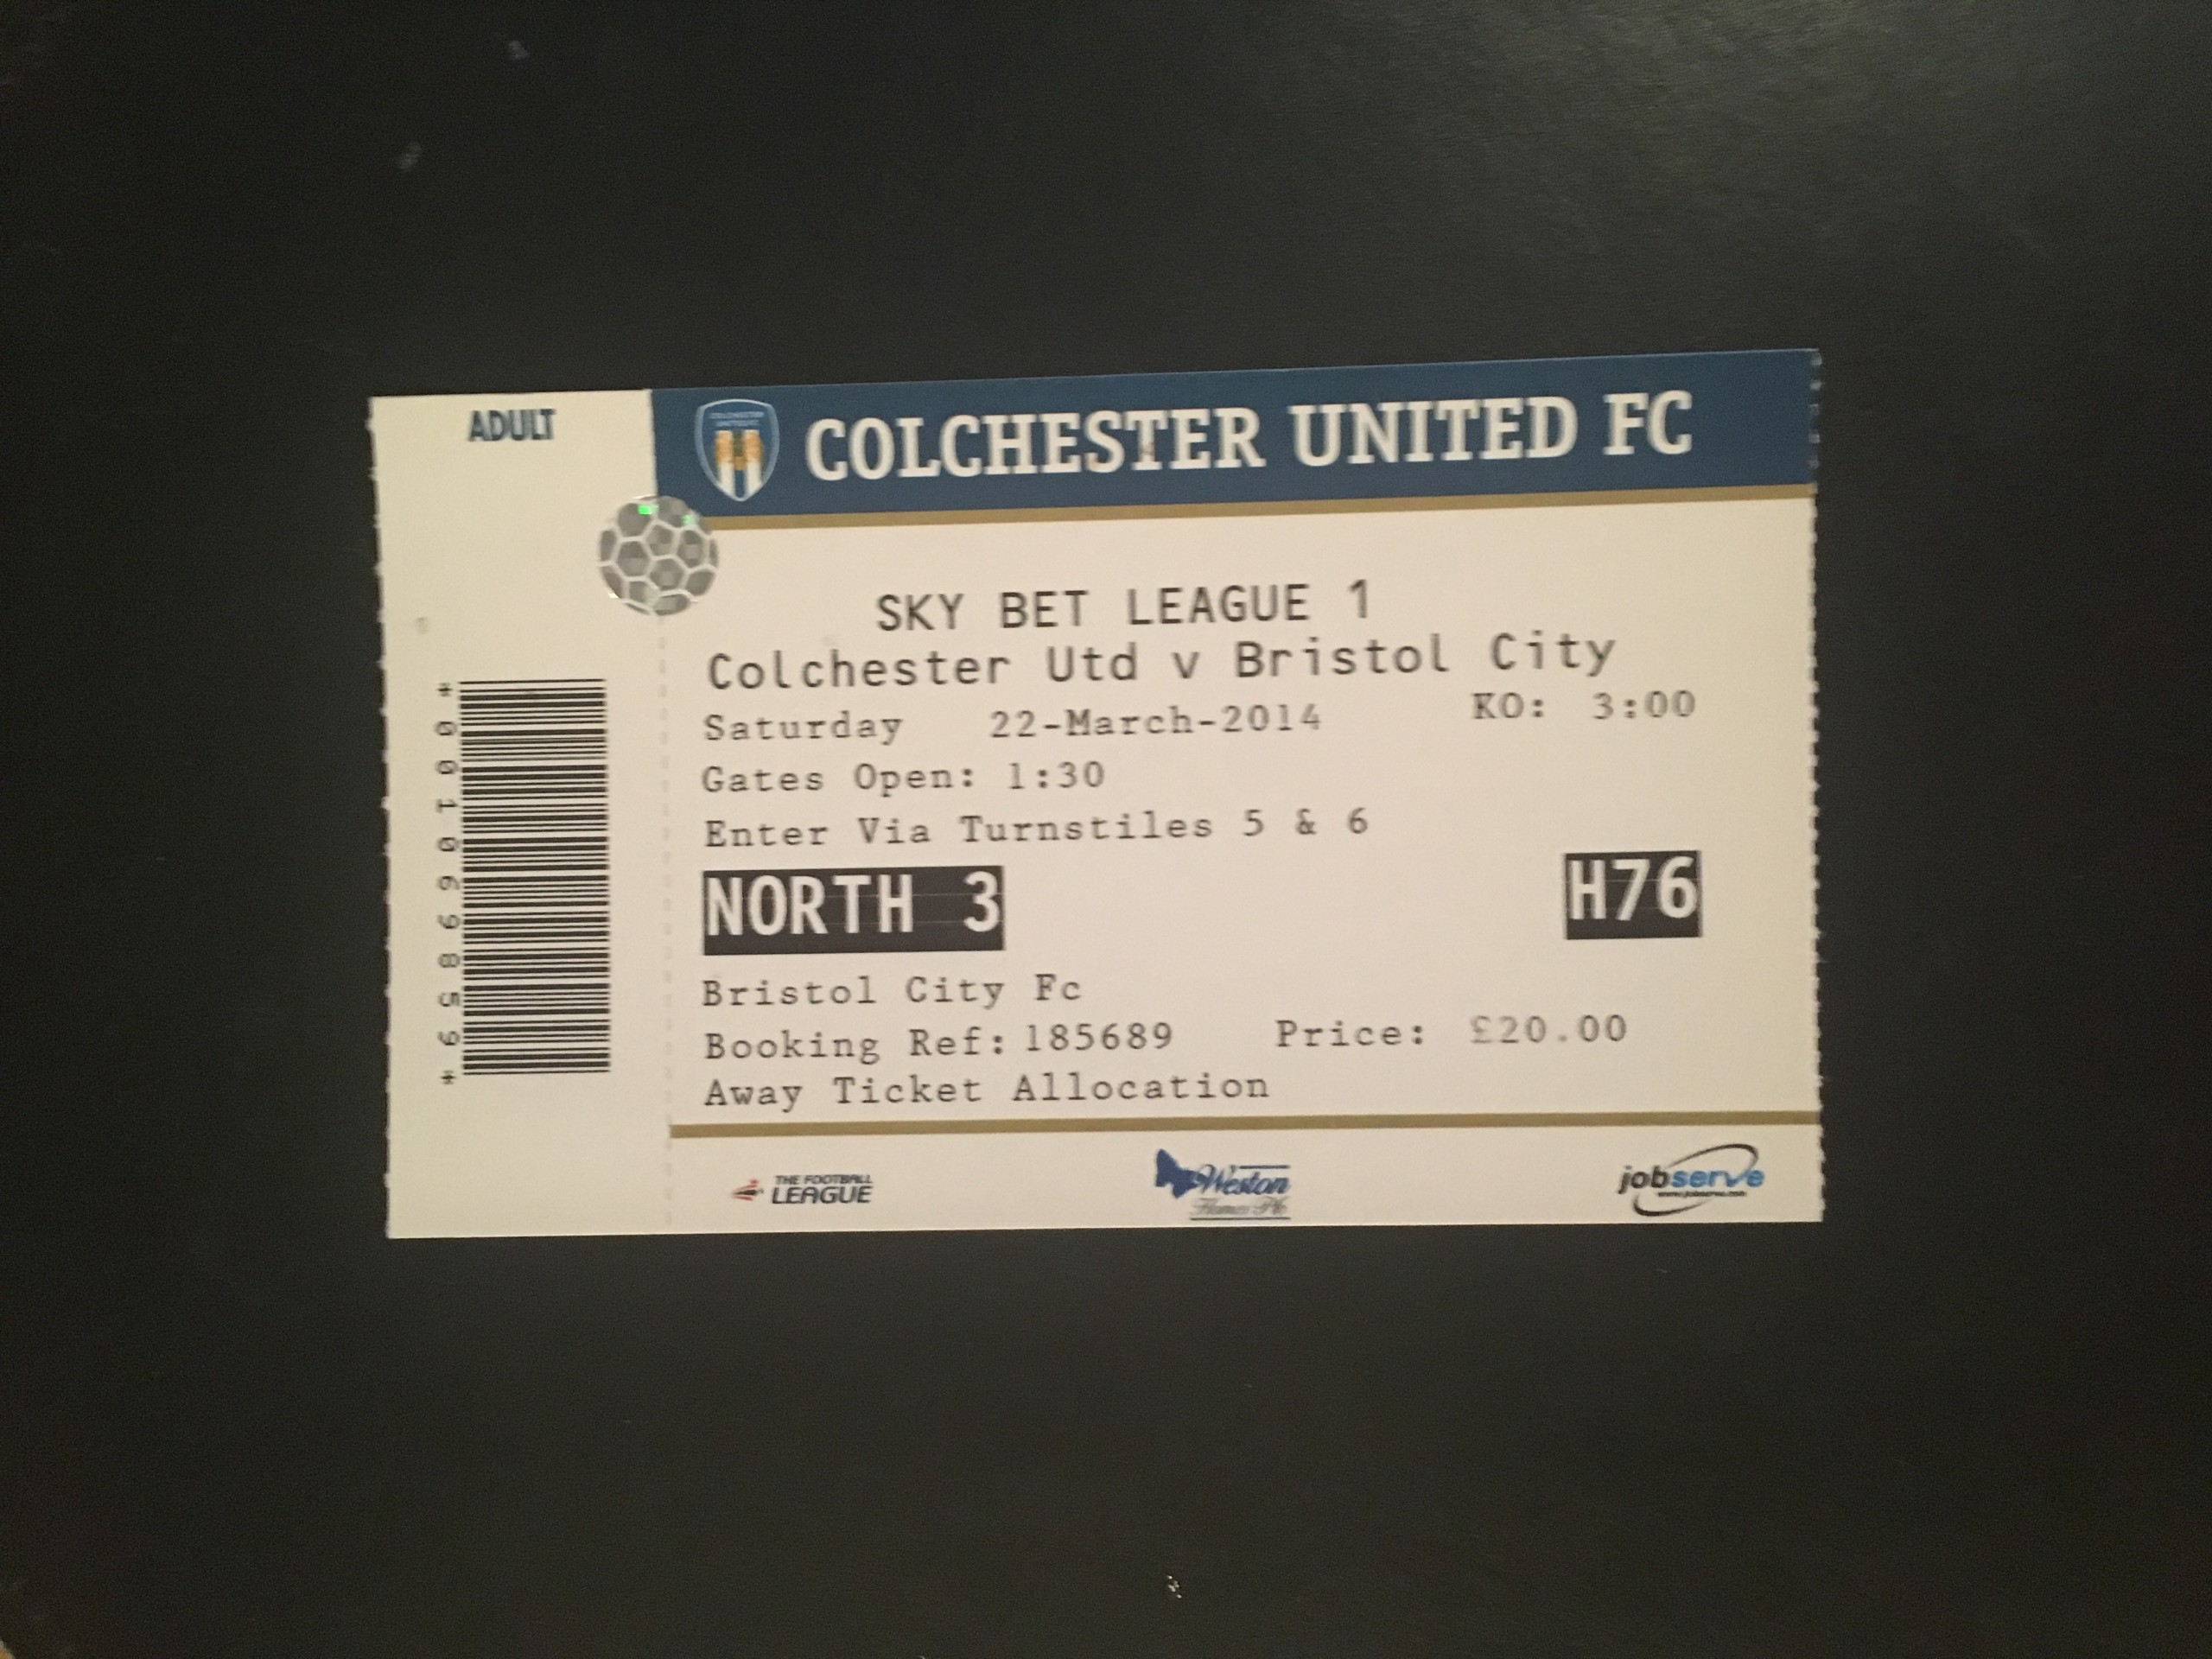 Colchester United v Bristol City 22-03-2014 Ticket